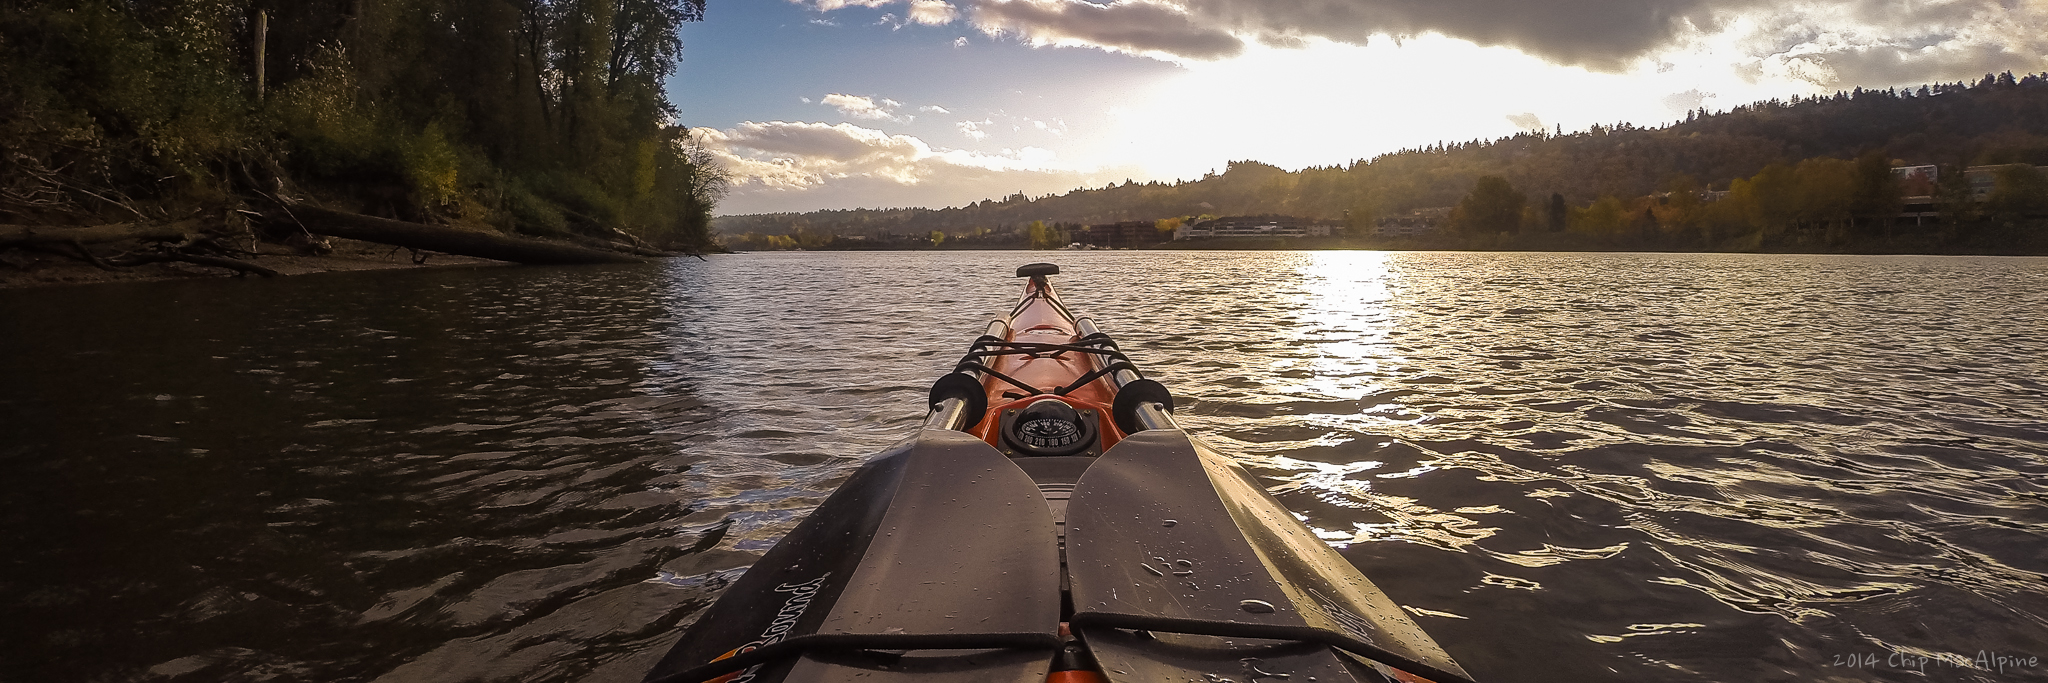 Chip MacAlpine, Willamette River, Oregon, Portland, Ross Island, Kayaking